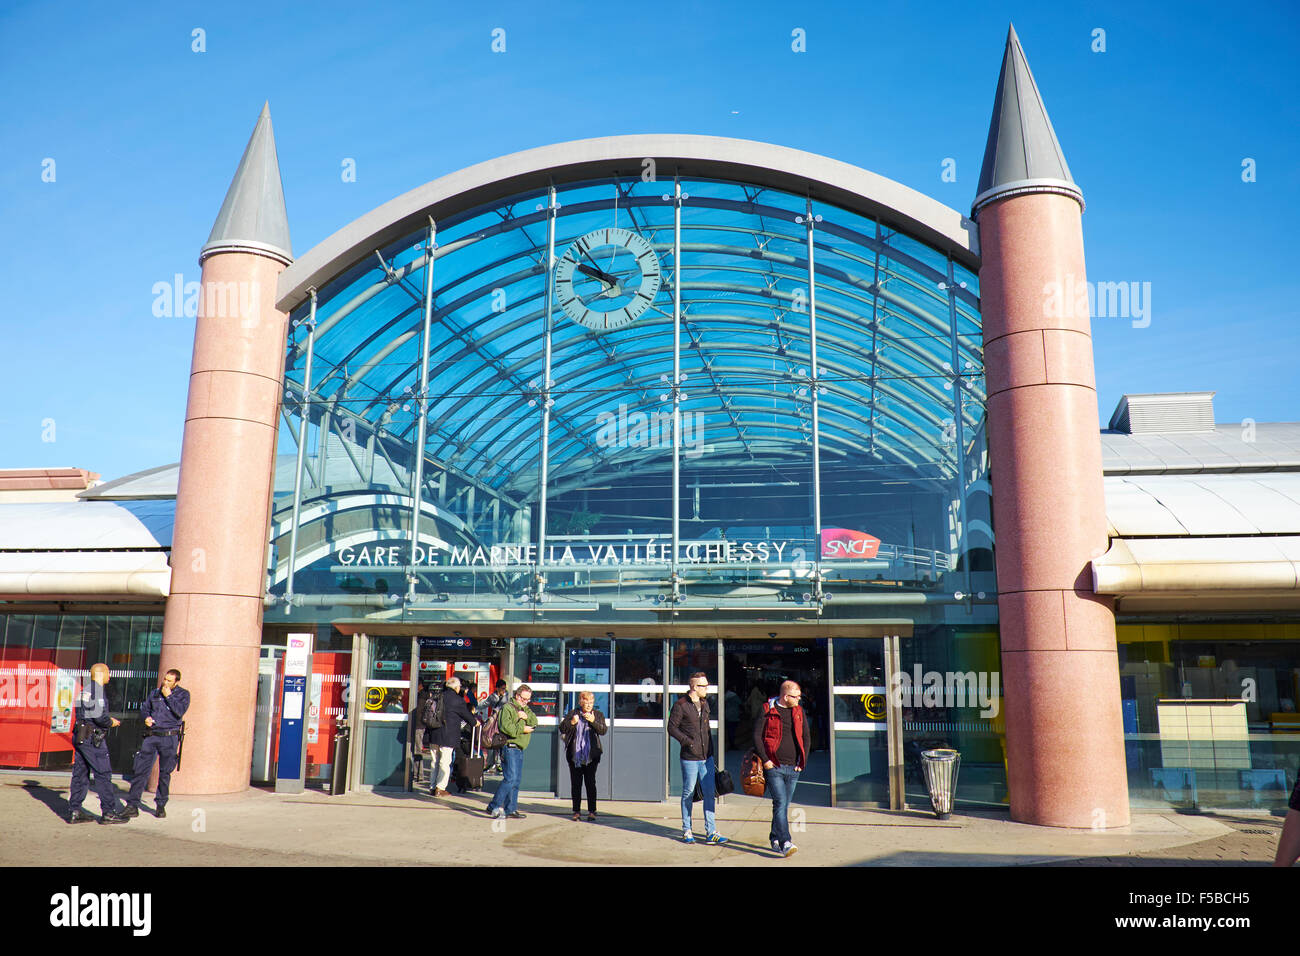 railway station disney village disneyland paris marne la vallee stock photo 89376481 alamy. Black Bedroom Furniture Sets. Home Design Ideas